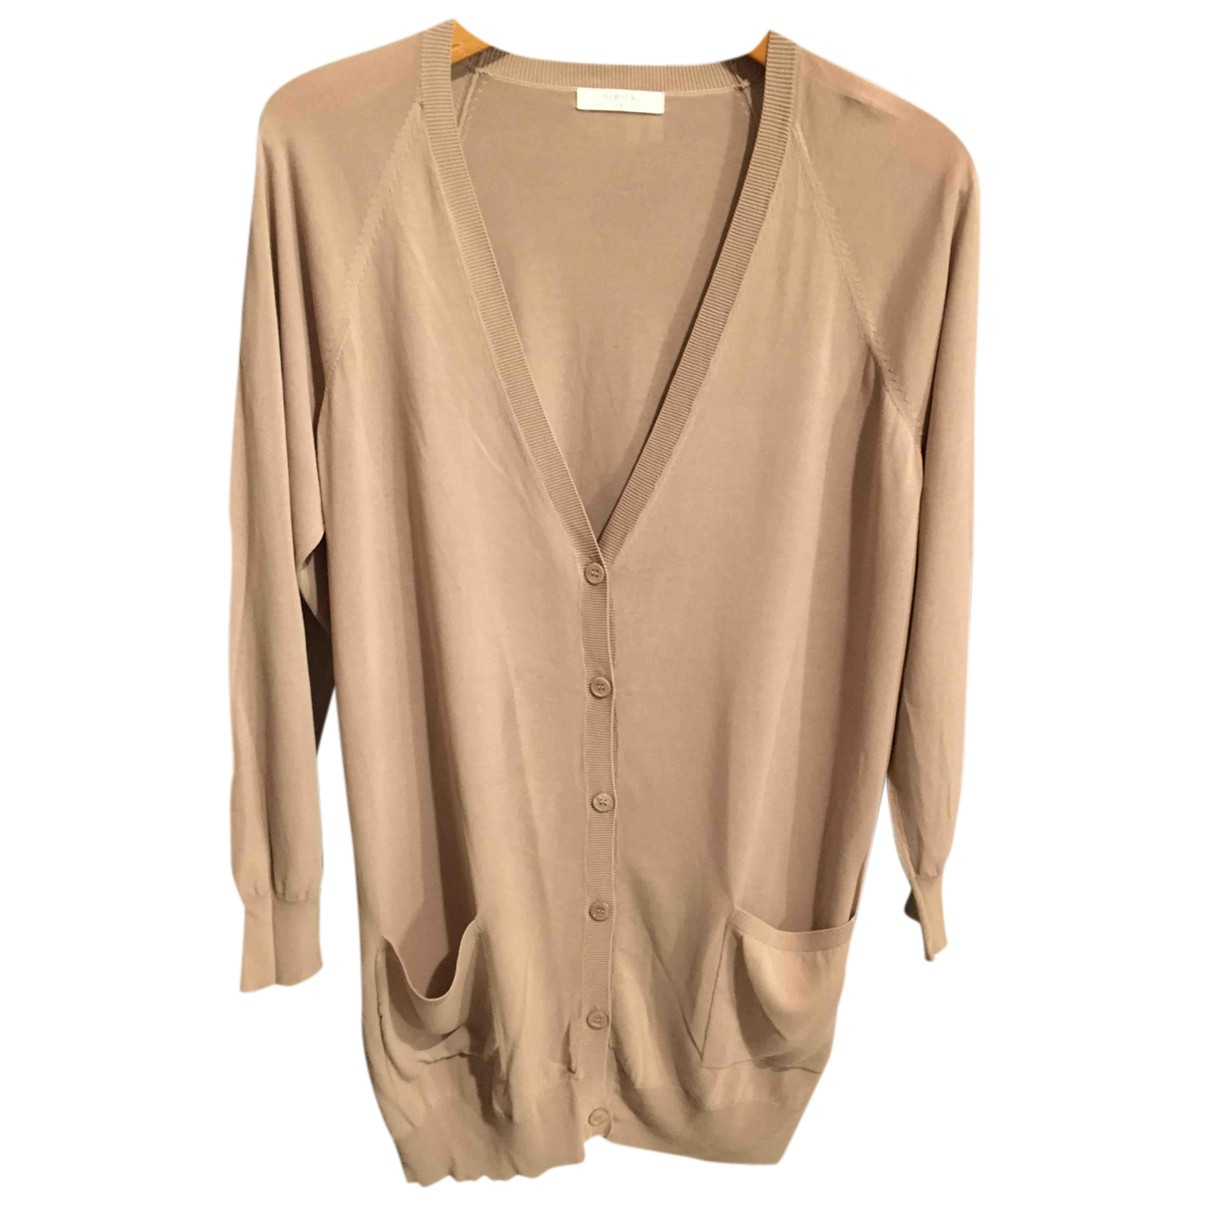 Non Signé / Unsigned Oversize Beige Knitwear for Women One Size International